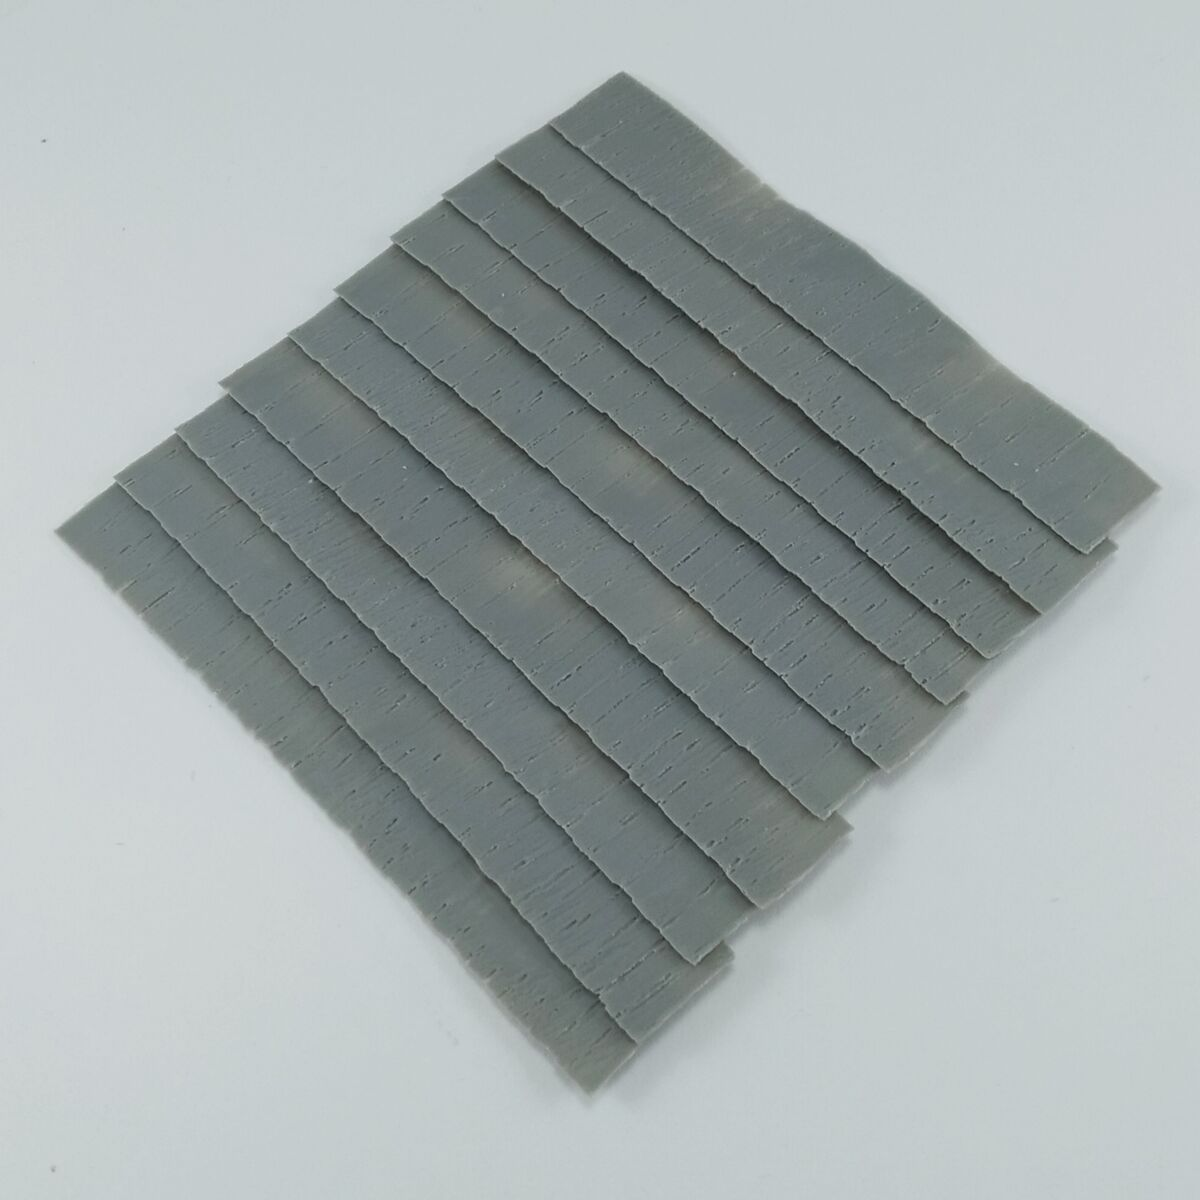 Roof tiles (wooden shingles) - Image 1